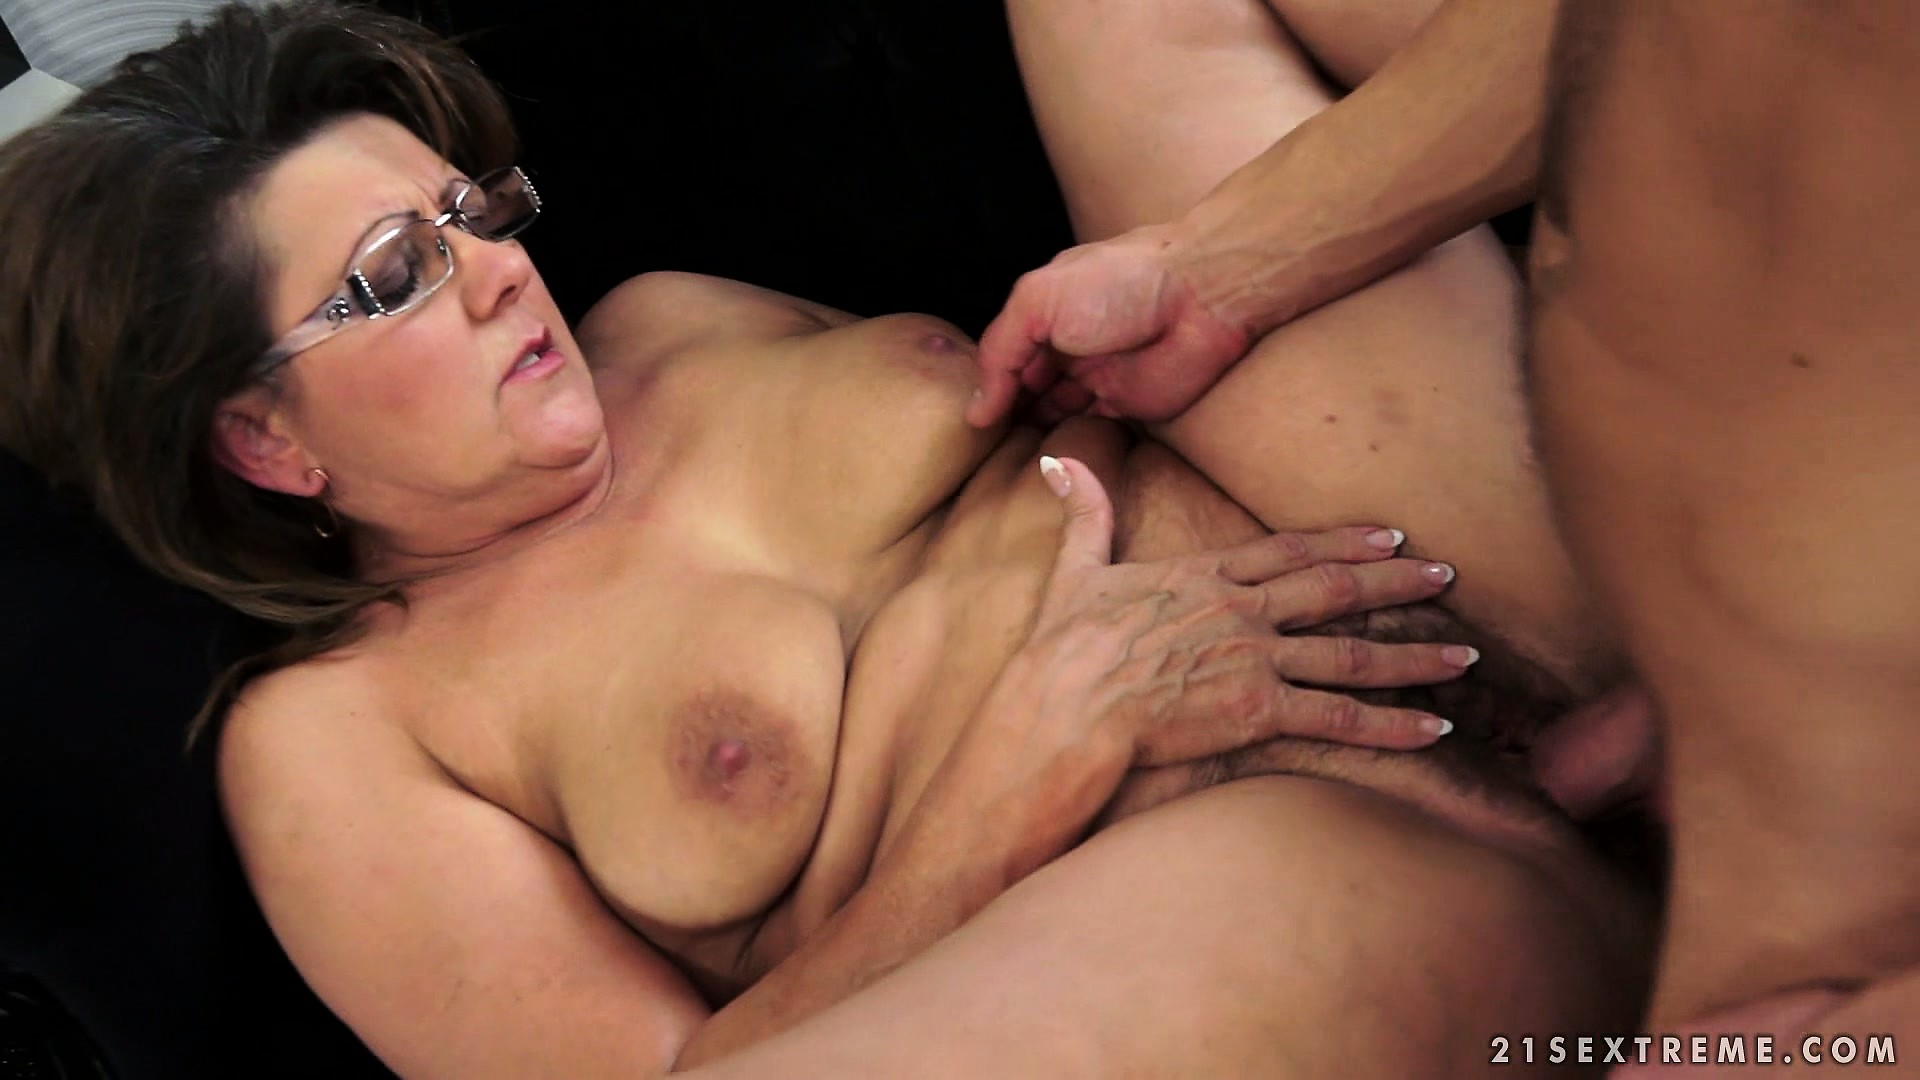 Porn Tube of Horny Mature Lady Seizes The Chance To Suck A Big Cock And Makes The Most Of It